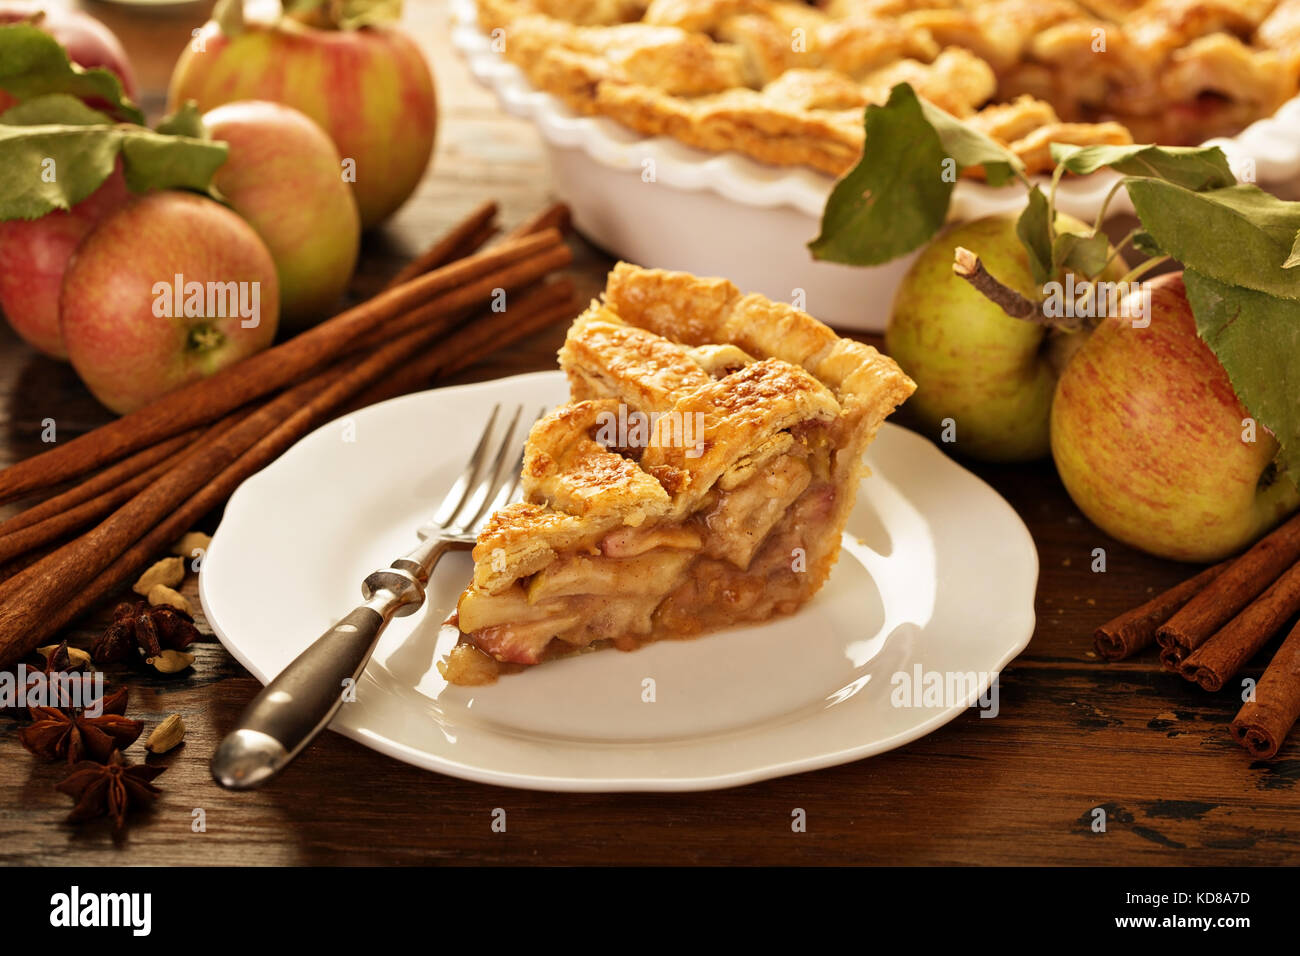 Piece of an apple pie on a plate - Stock Image